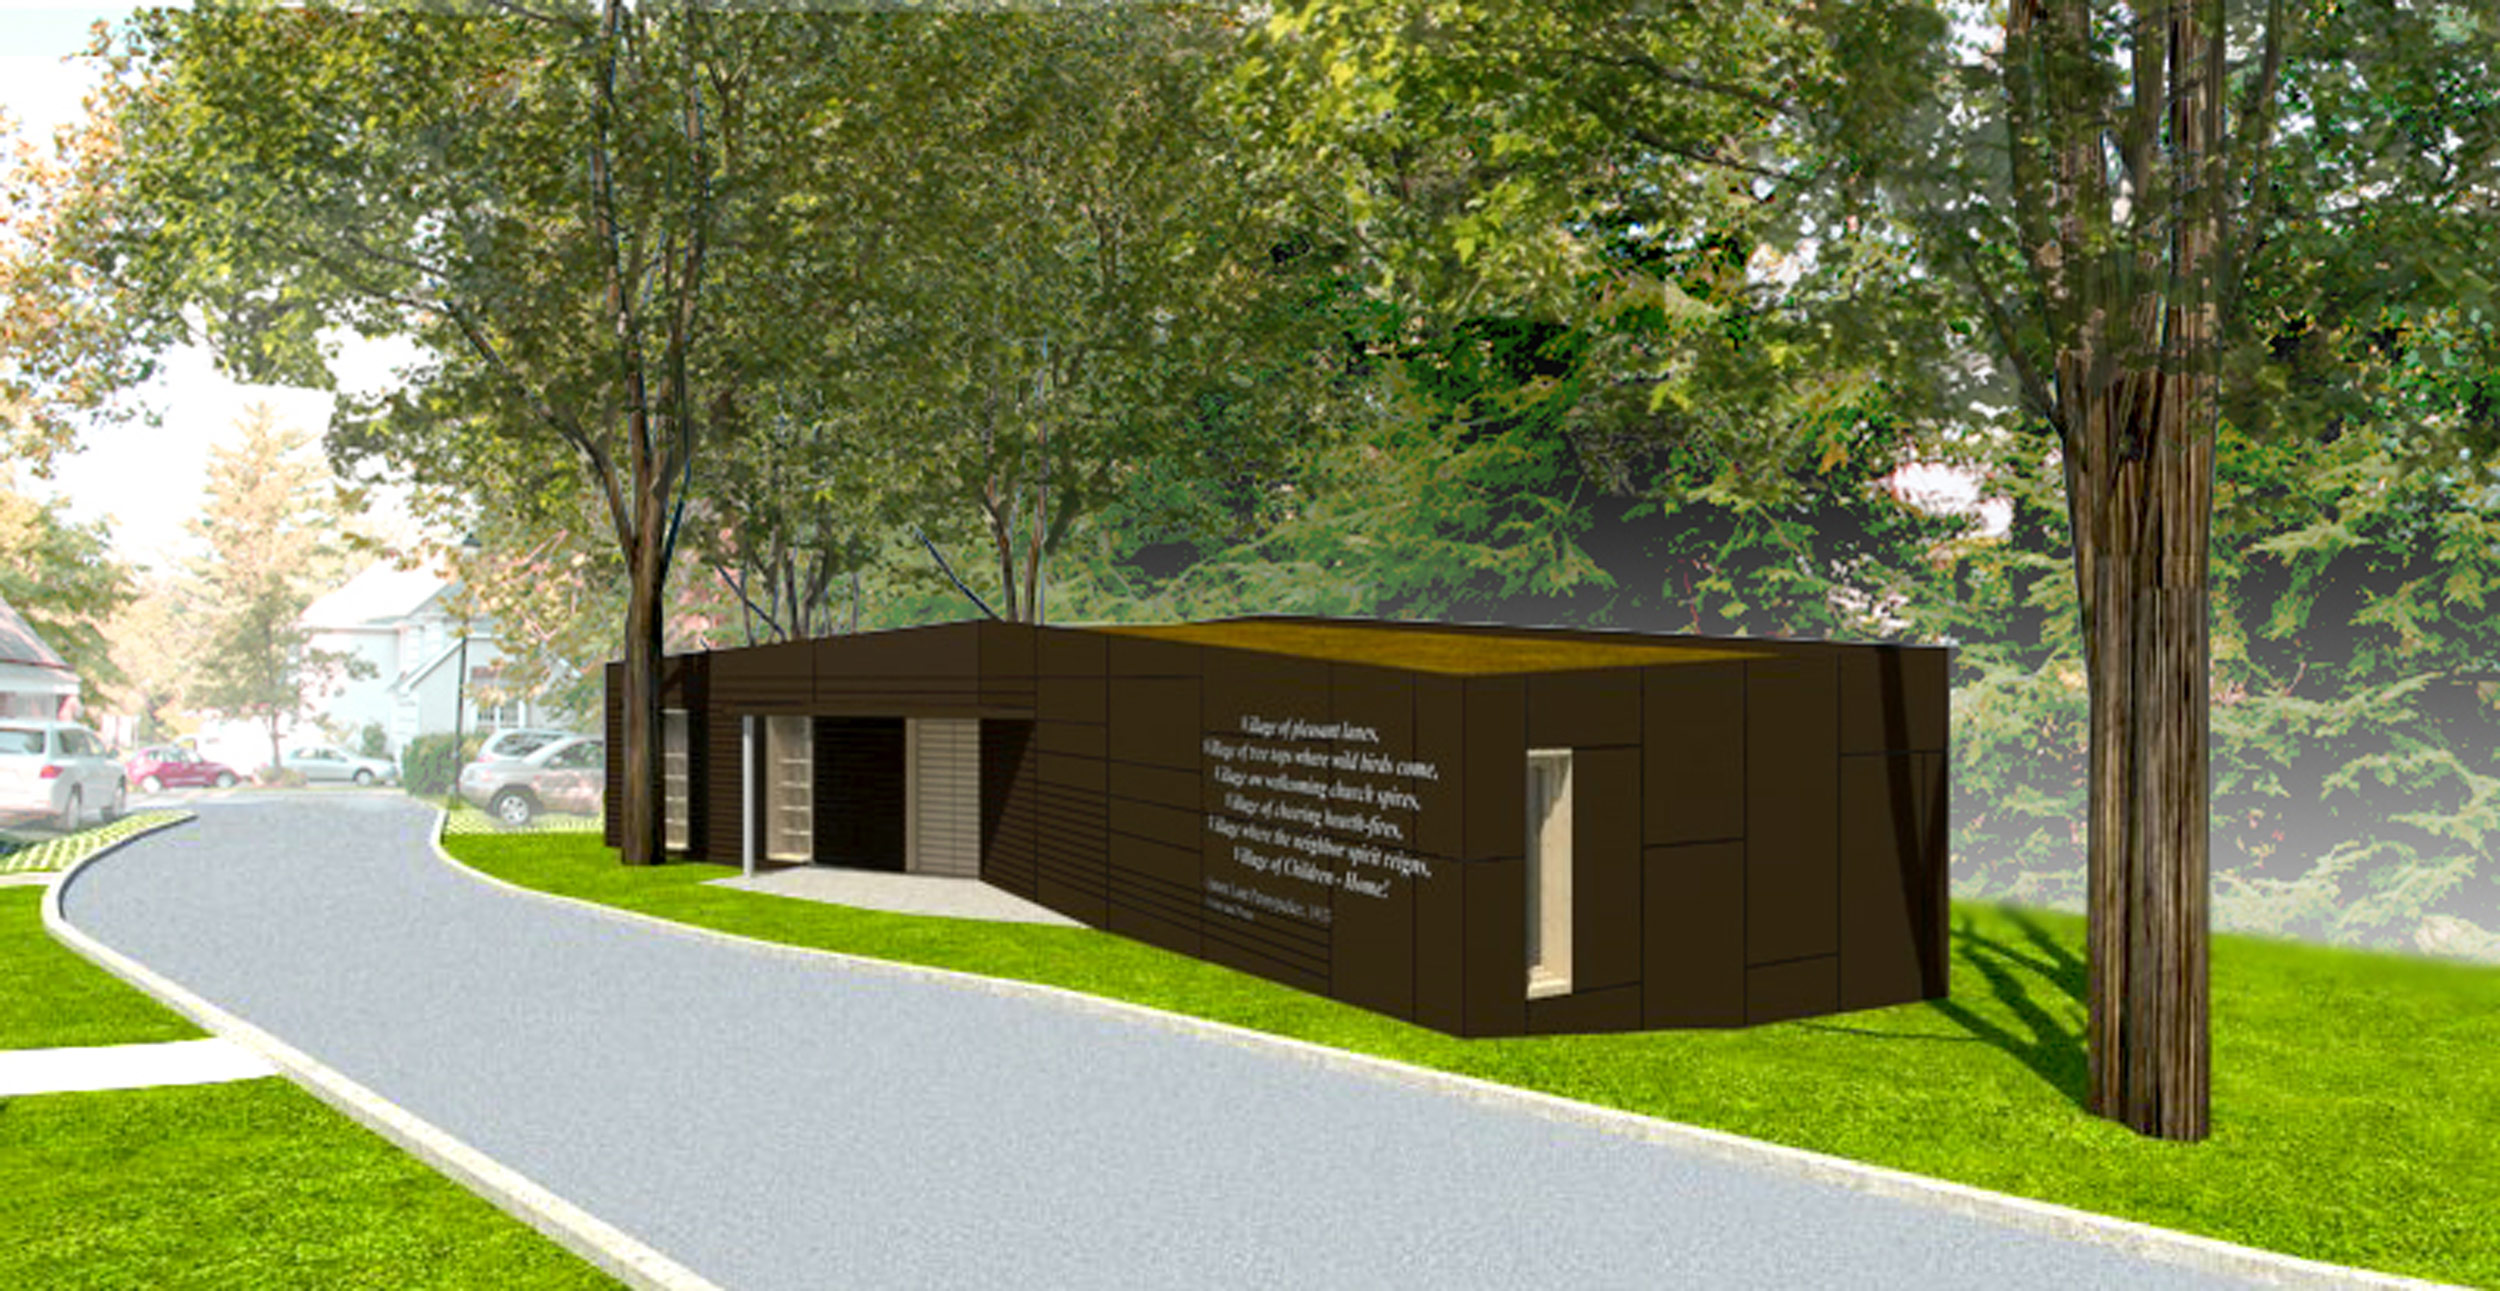 Wissahickon-Valley-Park-Visitors-Office_Low_03